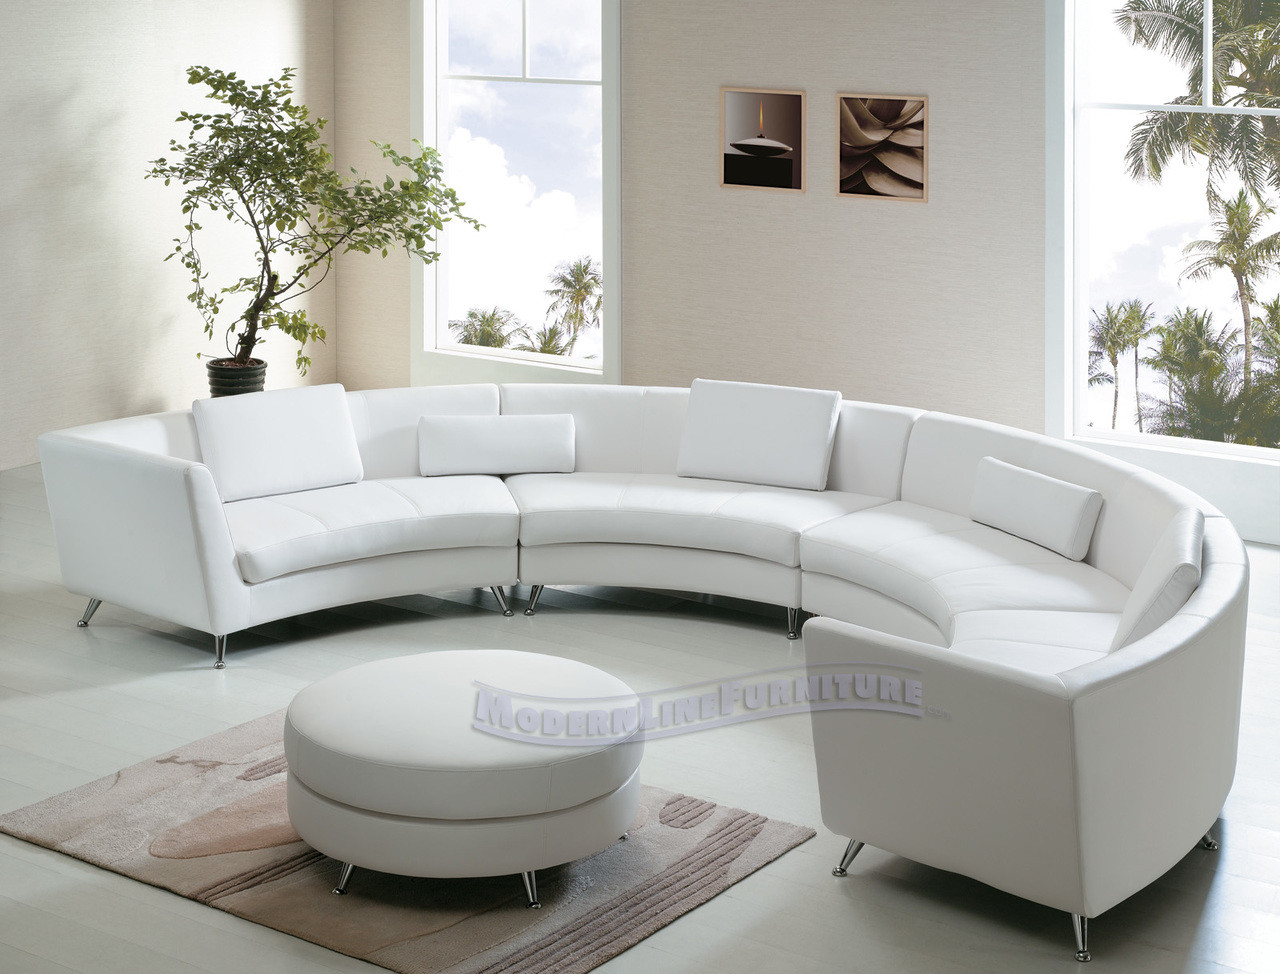 Curved Sofa 8004 Exclusive Extra Long Curved Sectional Sofa With An Ottoman